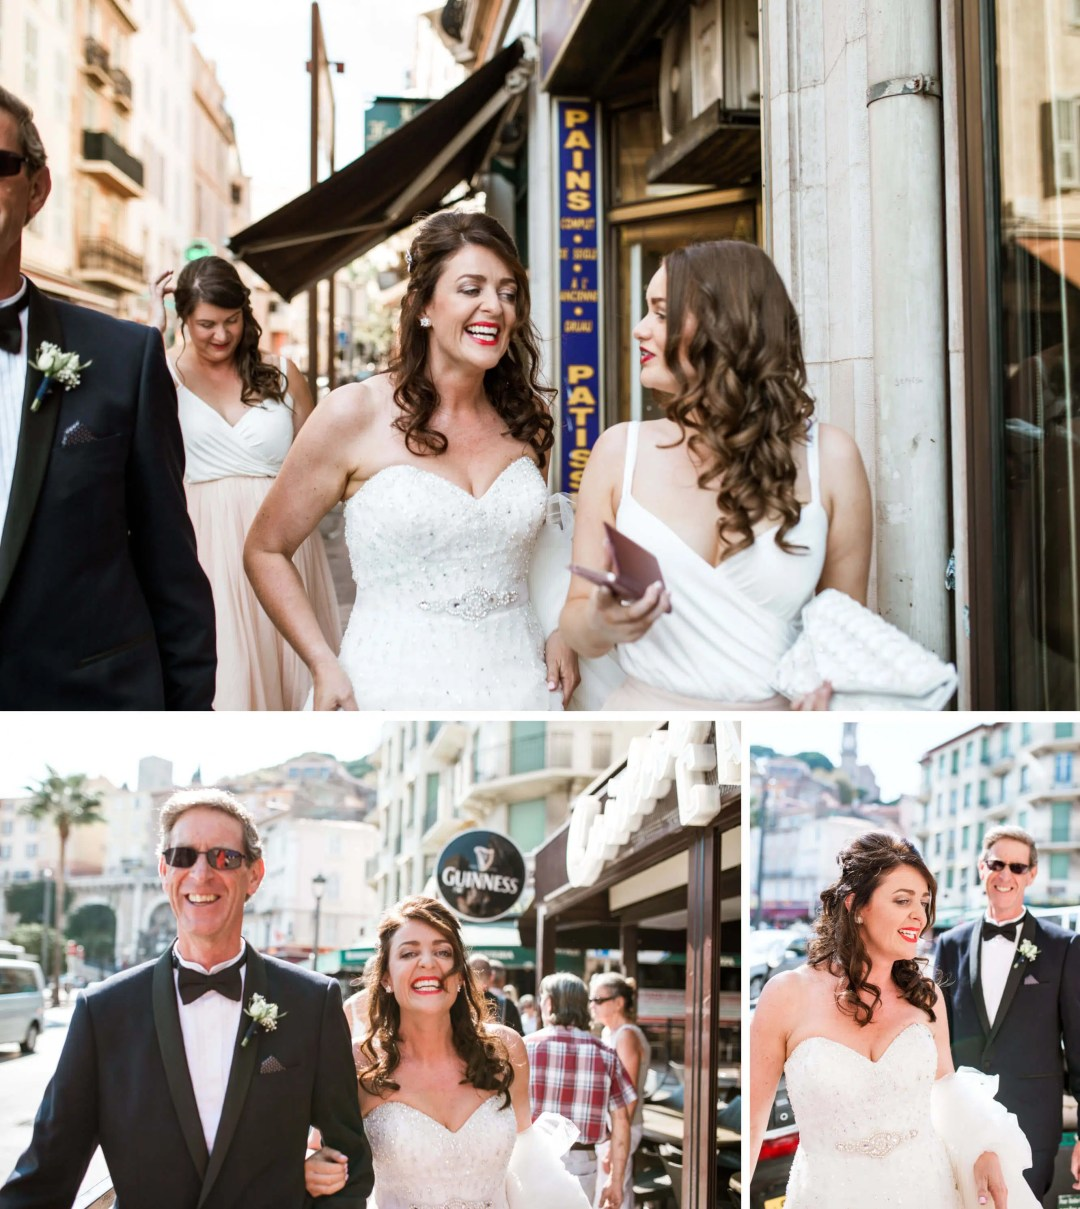 bride-destination-wedding-photographer-in-cannes-la-mairie-town-hall